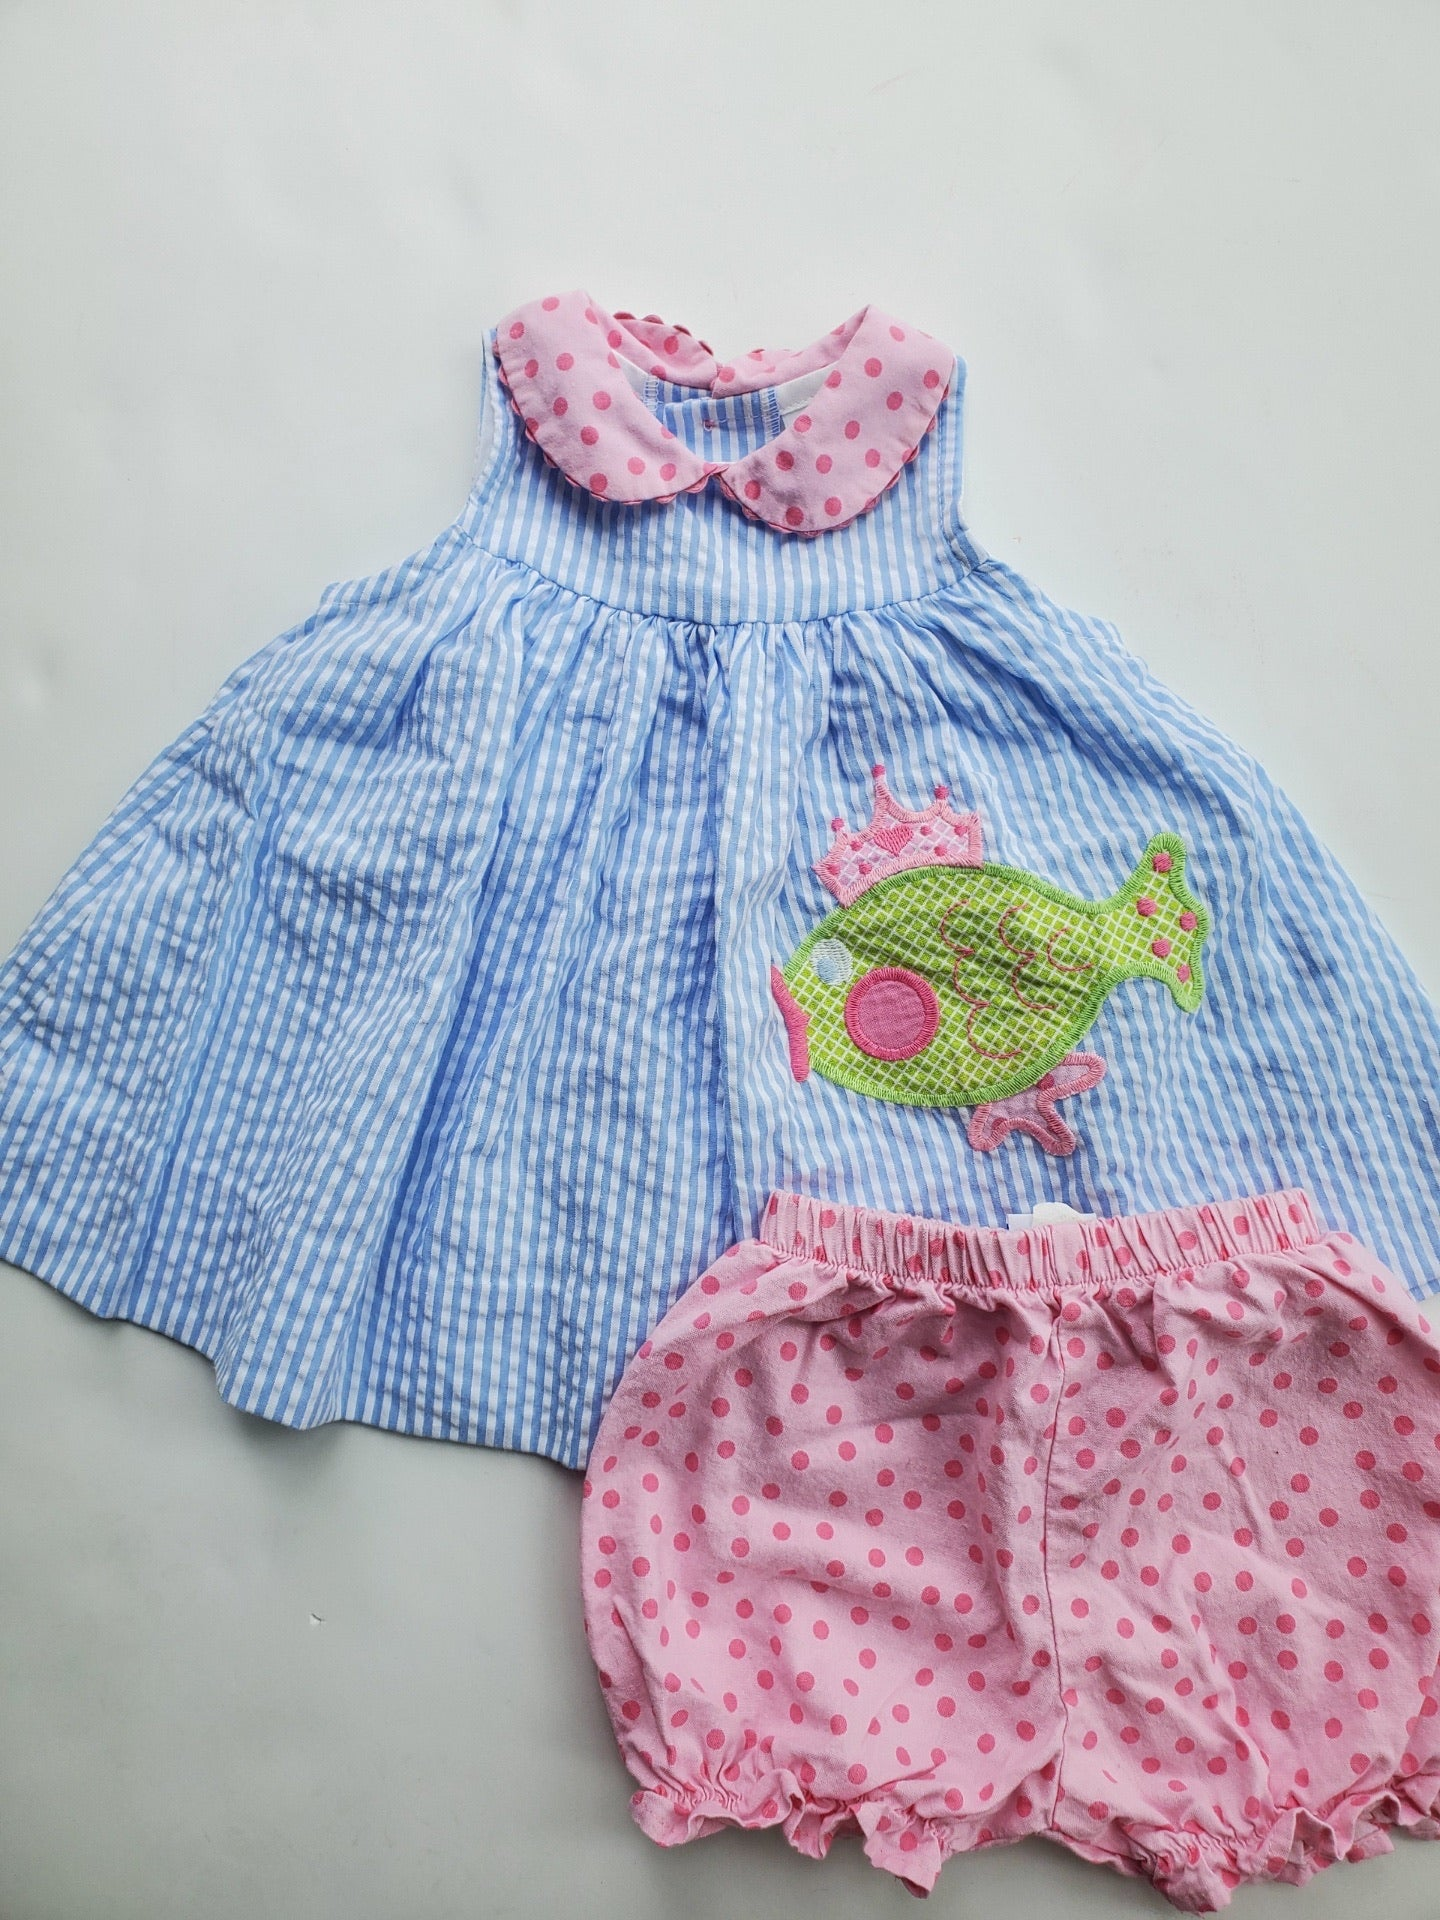 Resale The Bailey Boys Fish Dress 9m